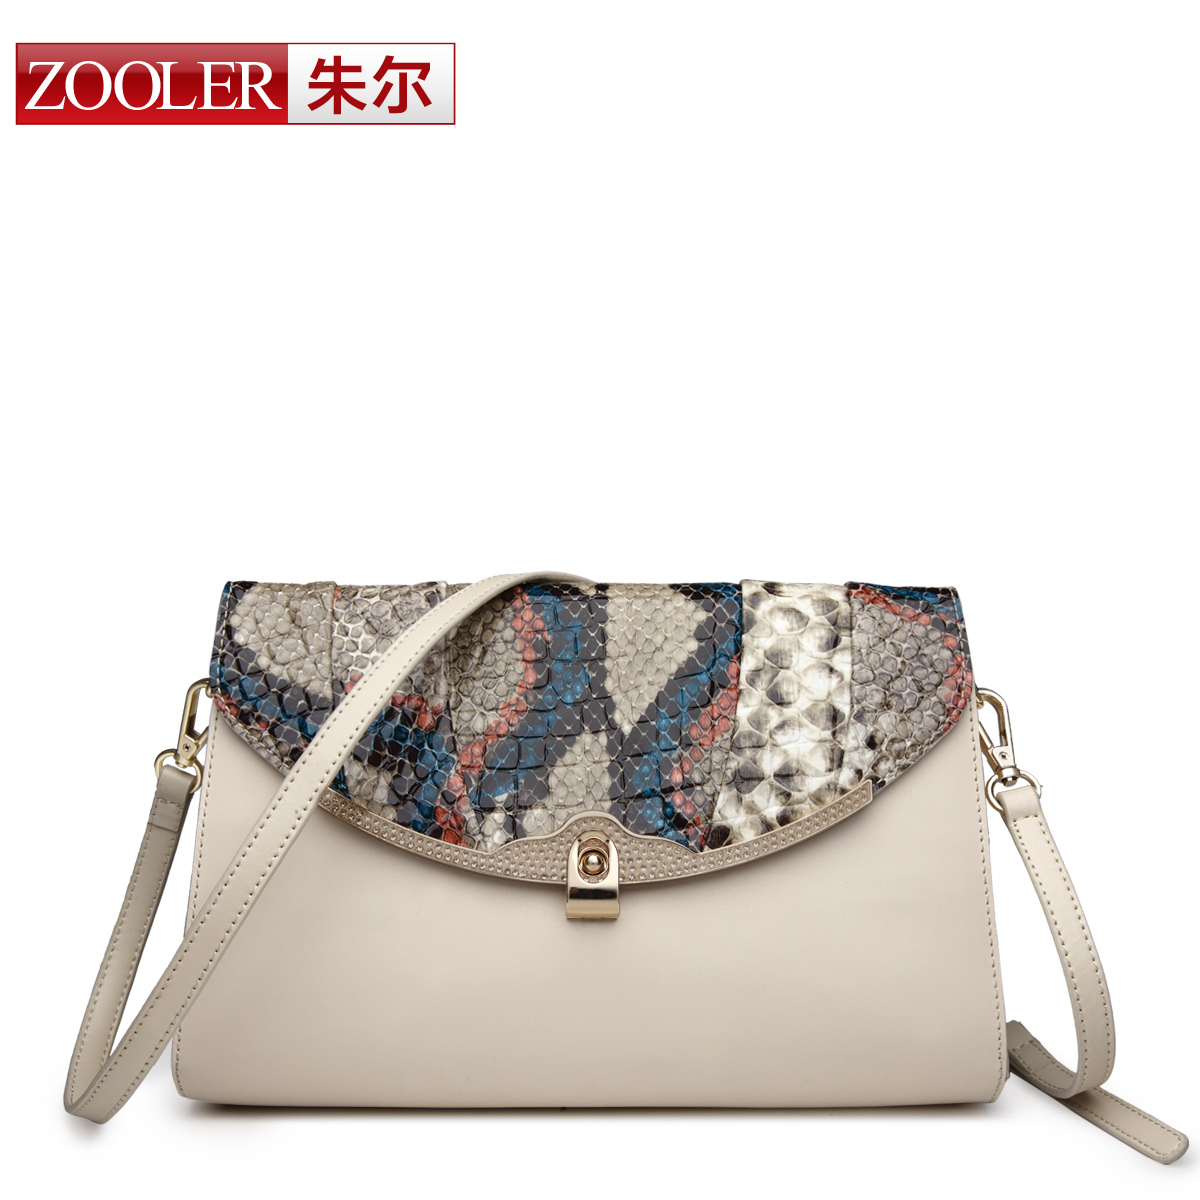 ФОТО Hot Sale! Zooler Genuine Leather Handbag bags handbags women famous brands bag ladies free shipping#1590